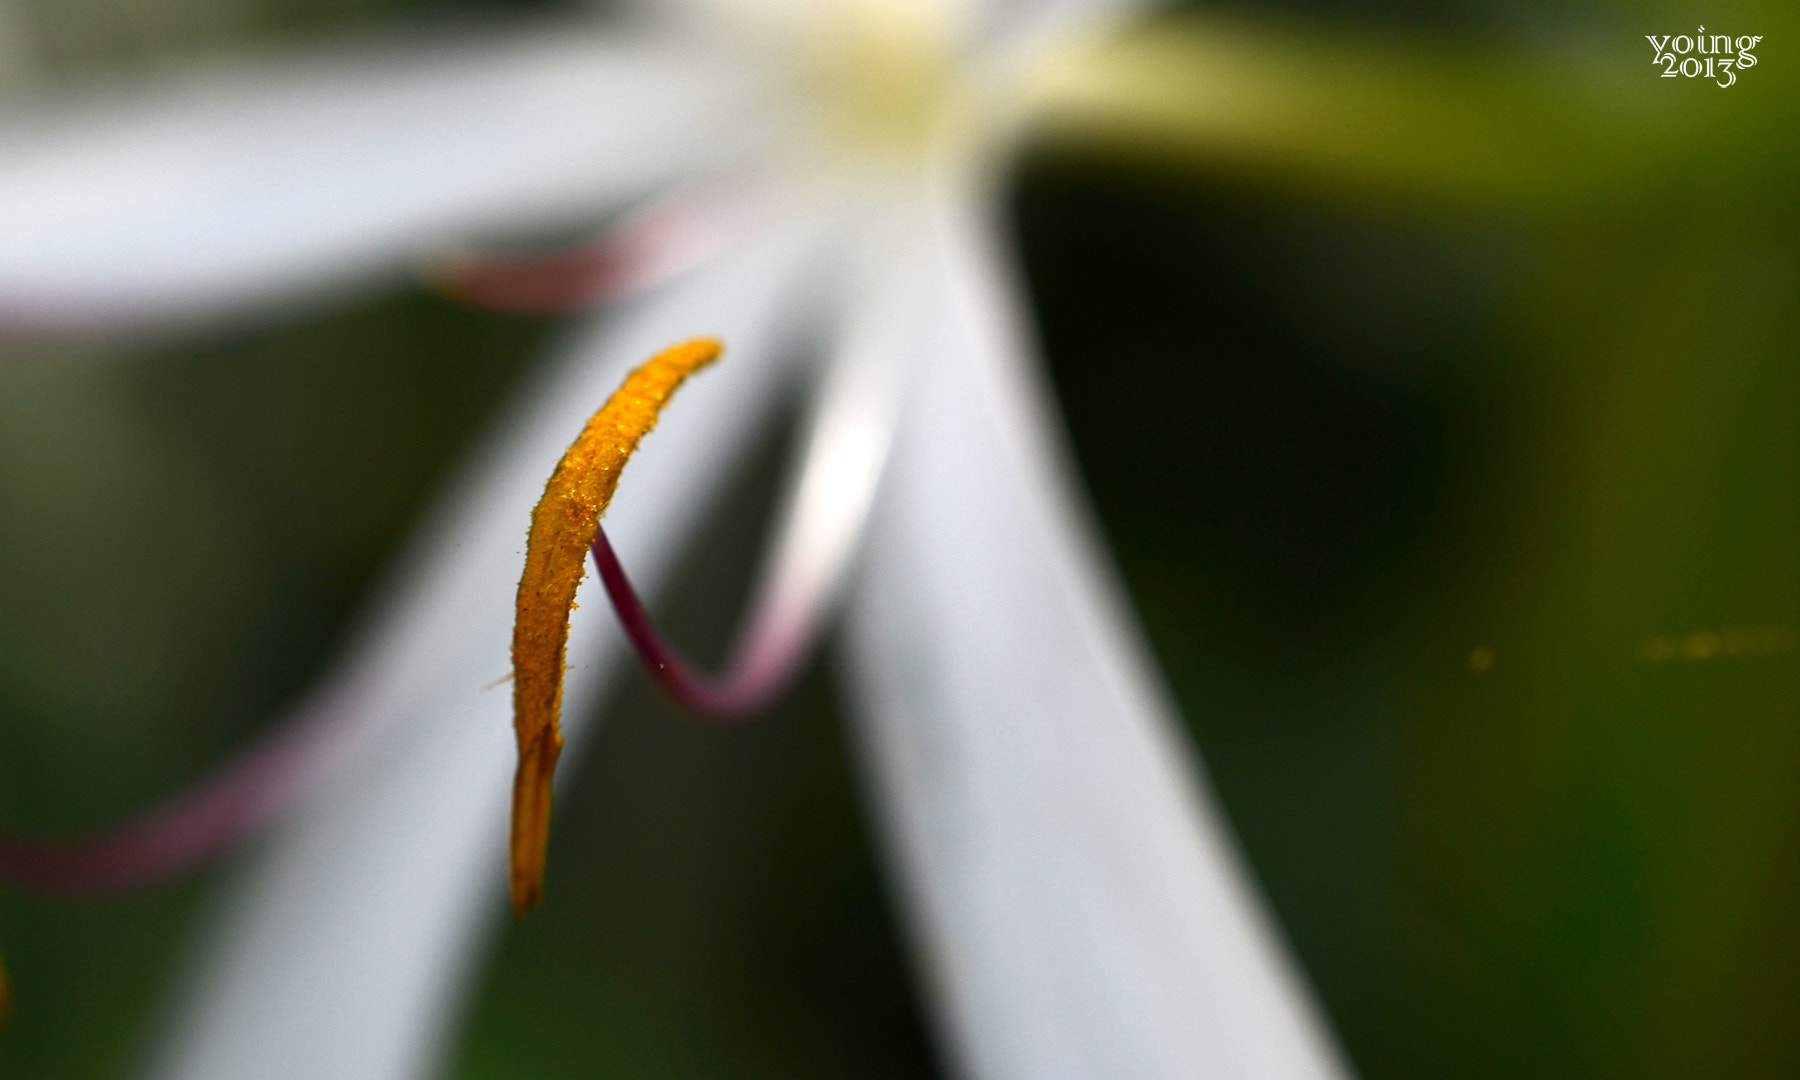 Photograph Stamen by yoing on 500px